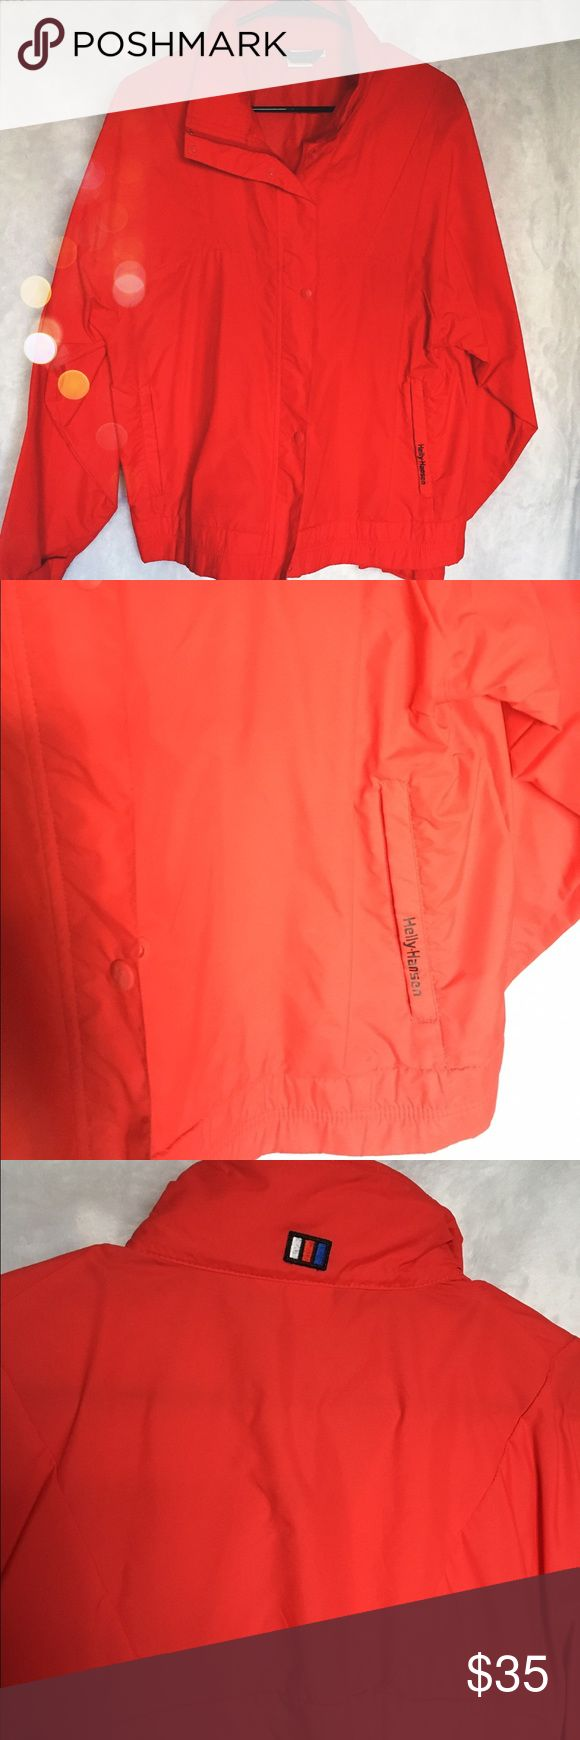 Vintage Helly Hansen jacket Water resistant jacket with zipper and buttons in the front and pockets that zip - perfect jacket for all your whether inclement needs! Helly Hansen Jackets & Coats Utility Jackets